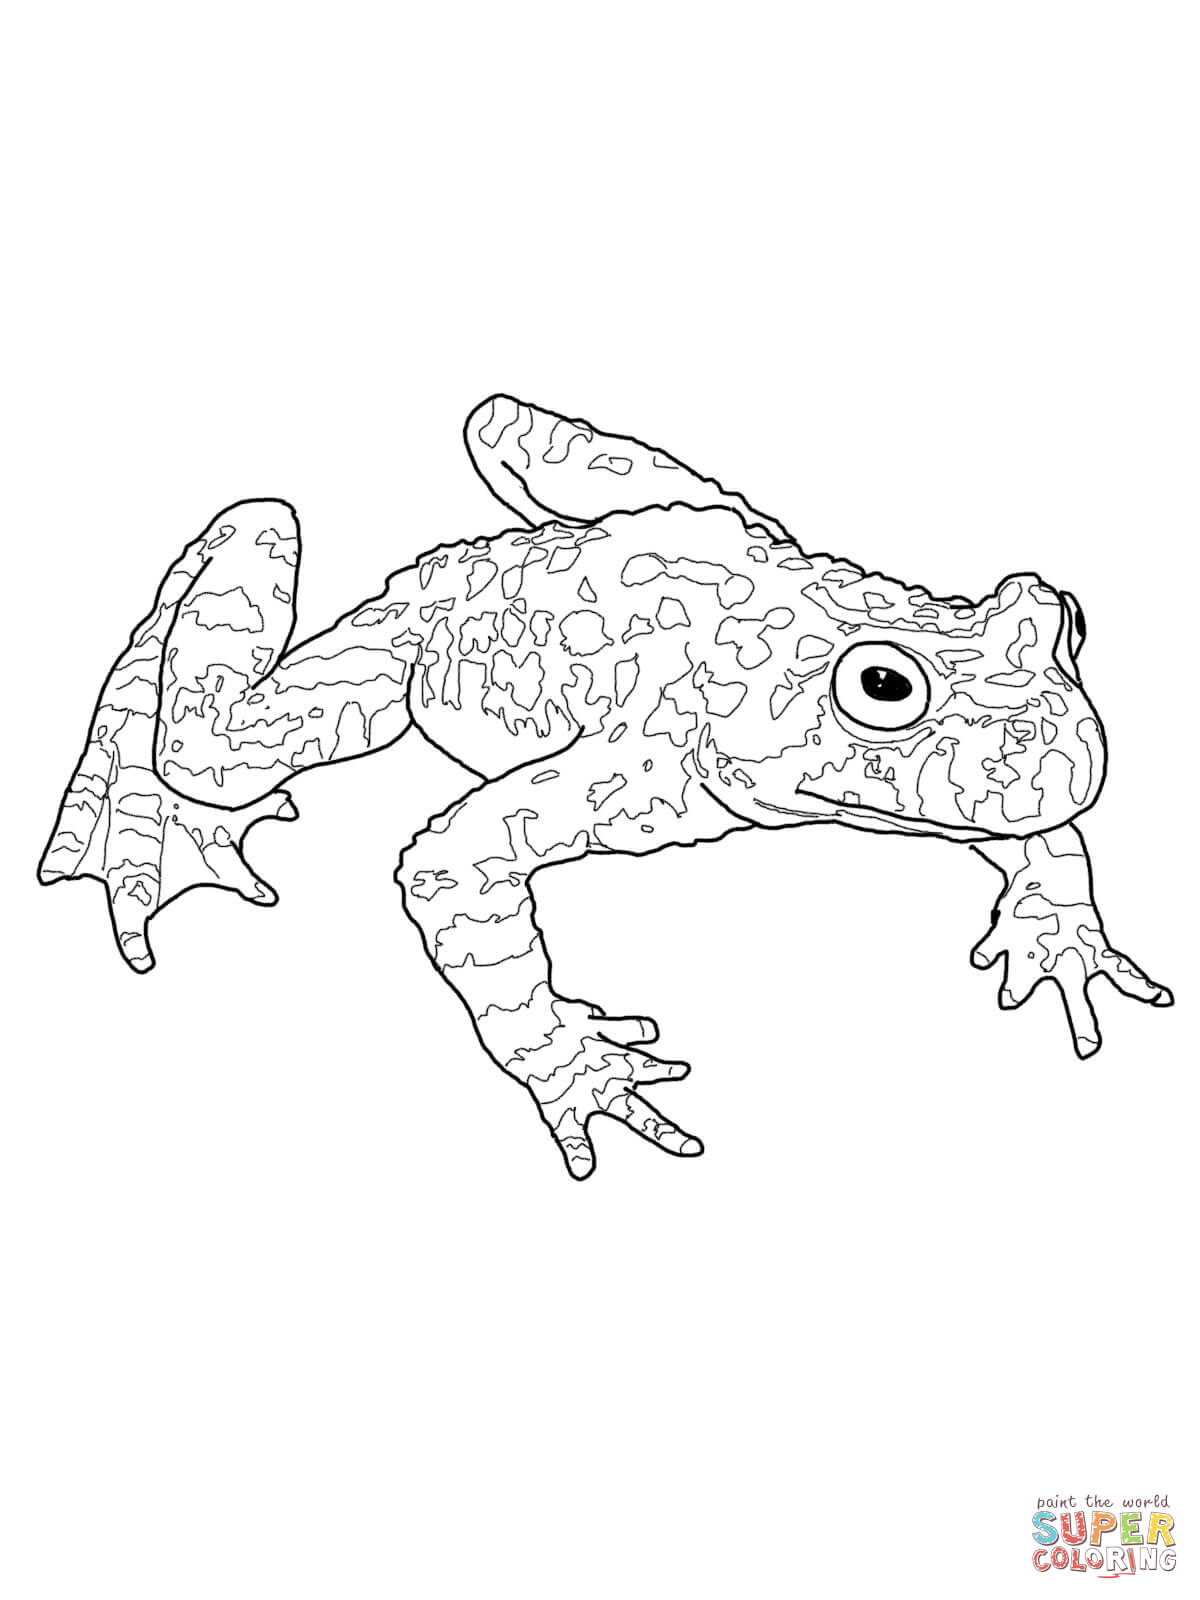 American Toad coloring #6, Download drawings